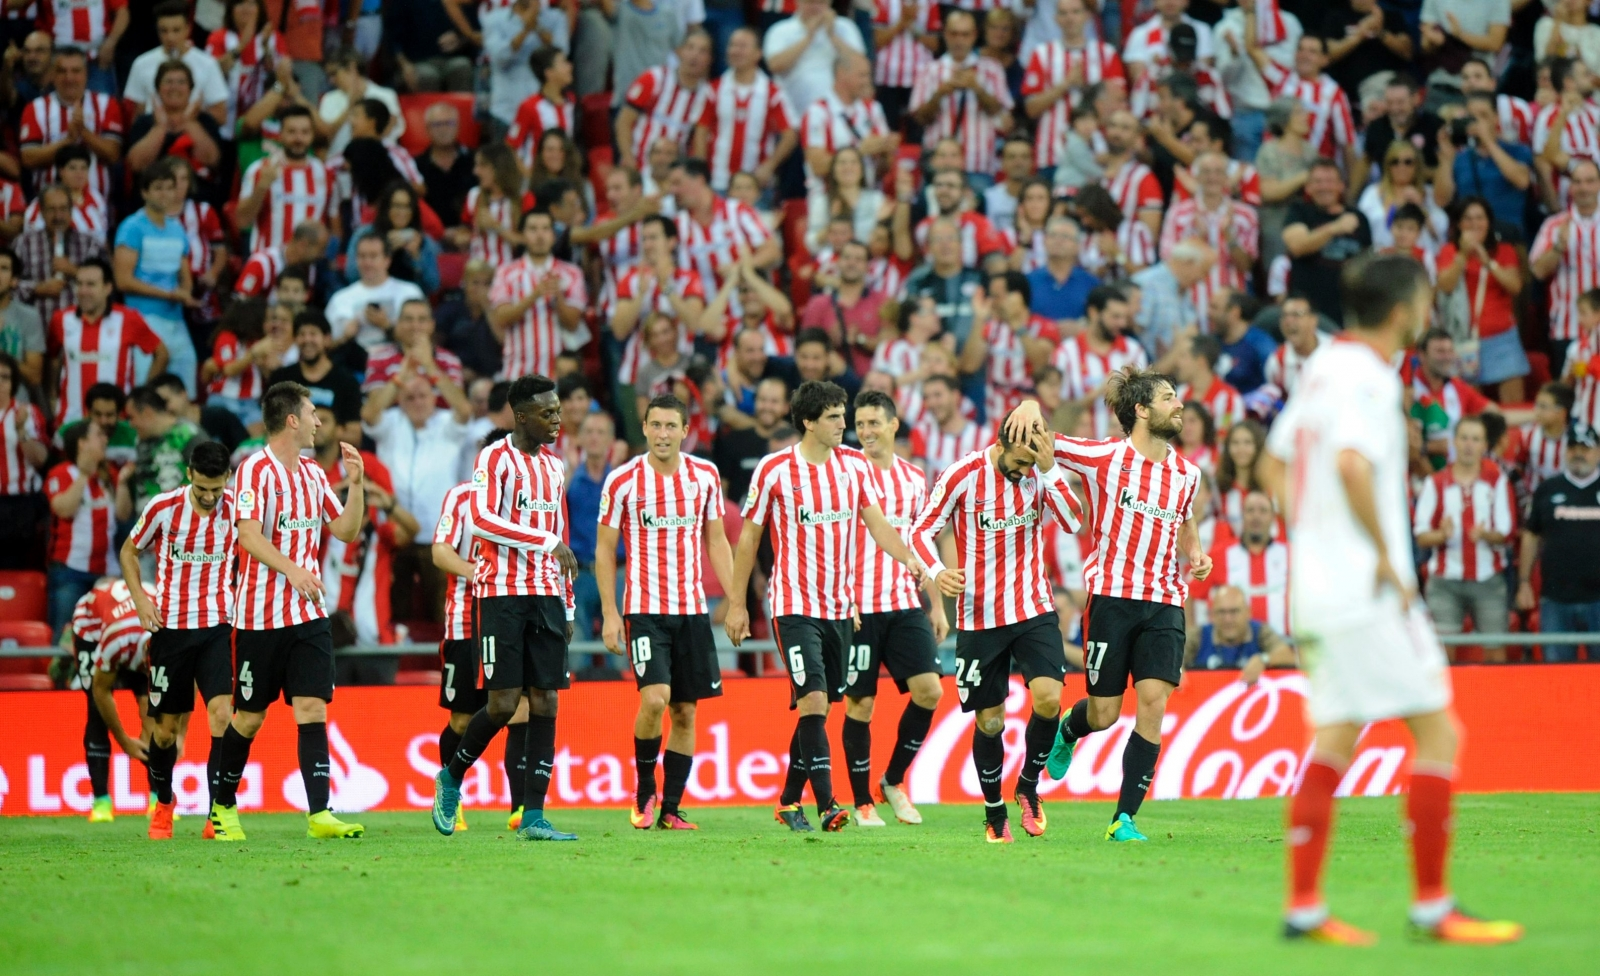 Athletic Bilbao